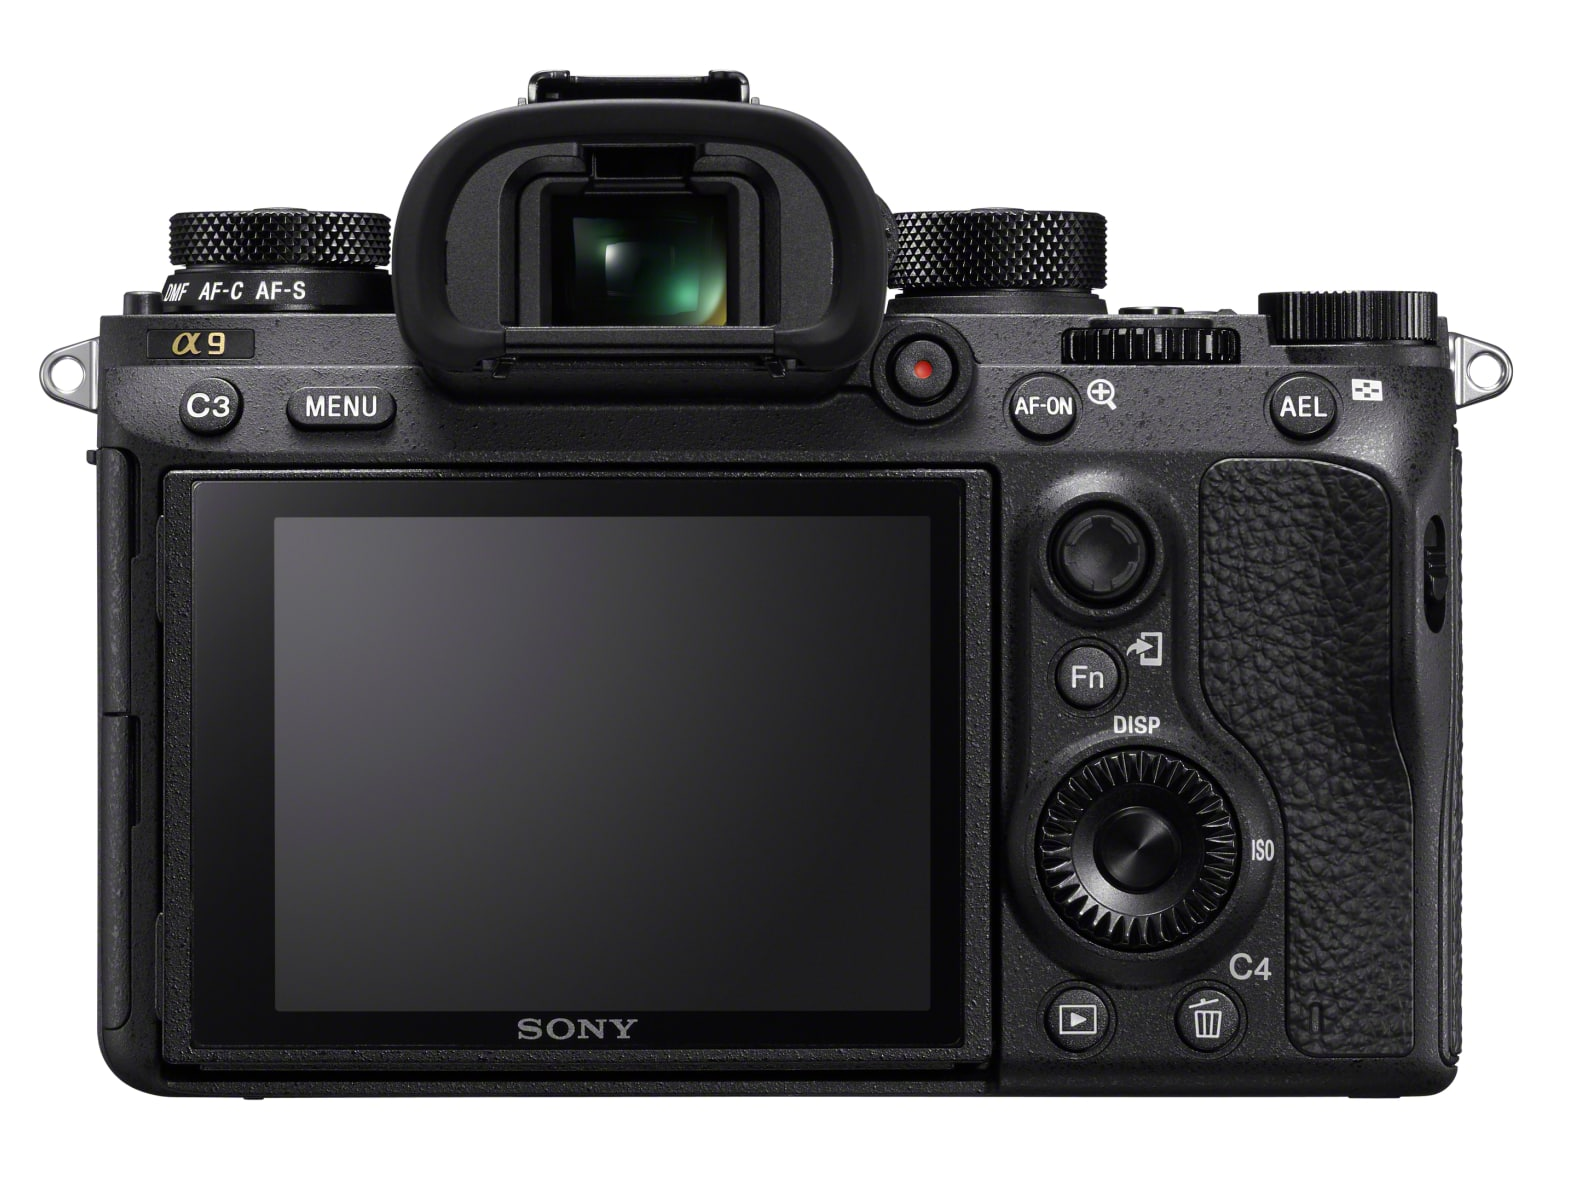 A Sony a9 camera designed for professional photographic images. An ideal tool for Norwich based photographers